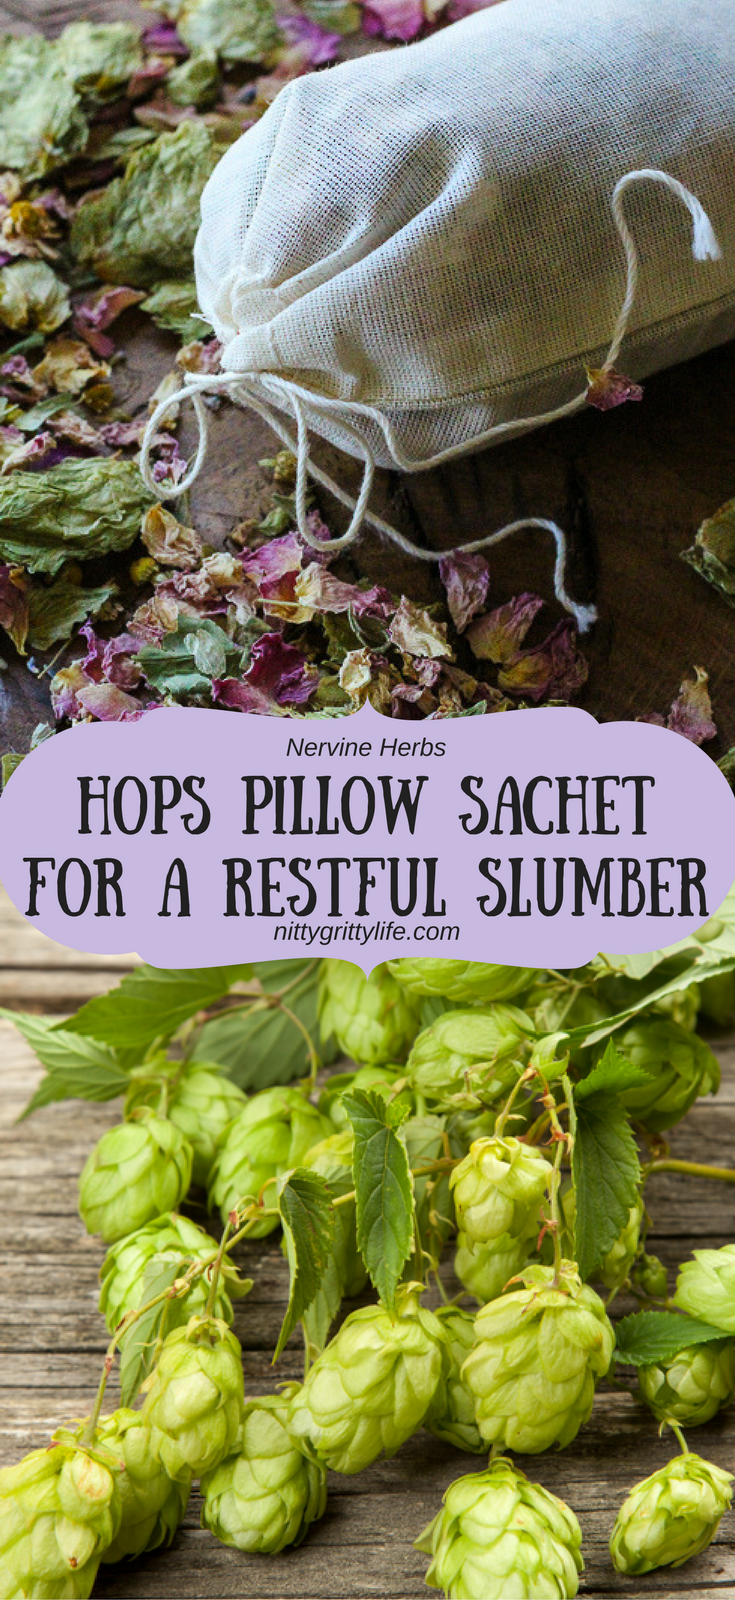 Hops are not just for beer making.  Actually, it is a wonderful, relaxing herb for those with nervous tension, anxiety, and insomnia.  Make a hops pillow sachet to promote a peaceful and restorative slumber.